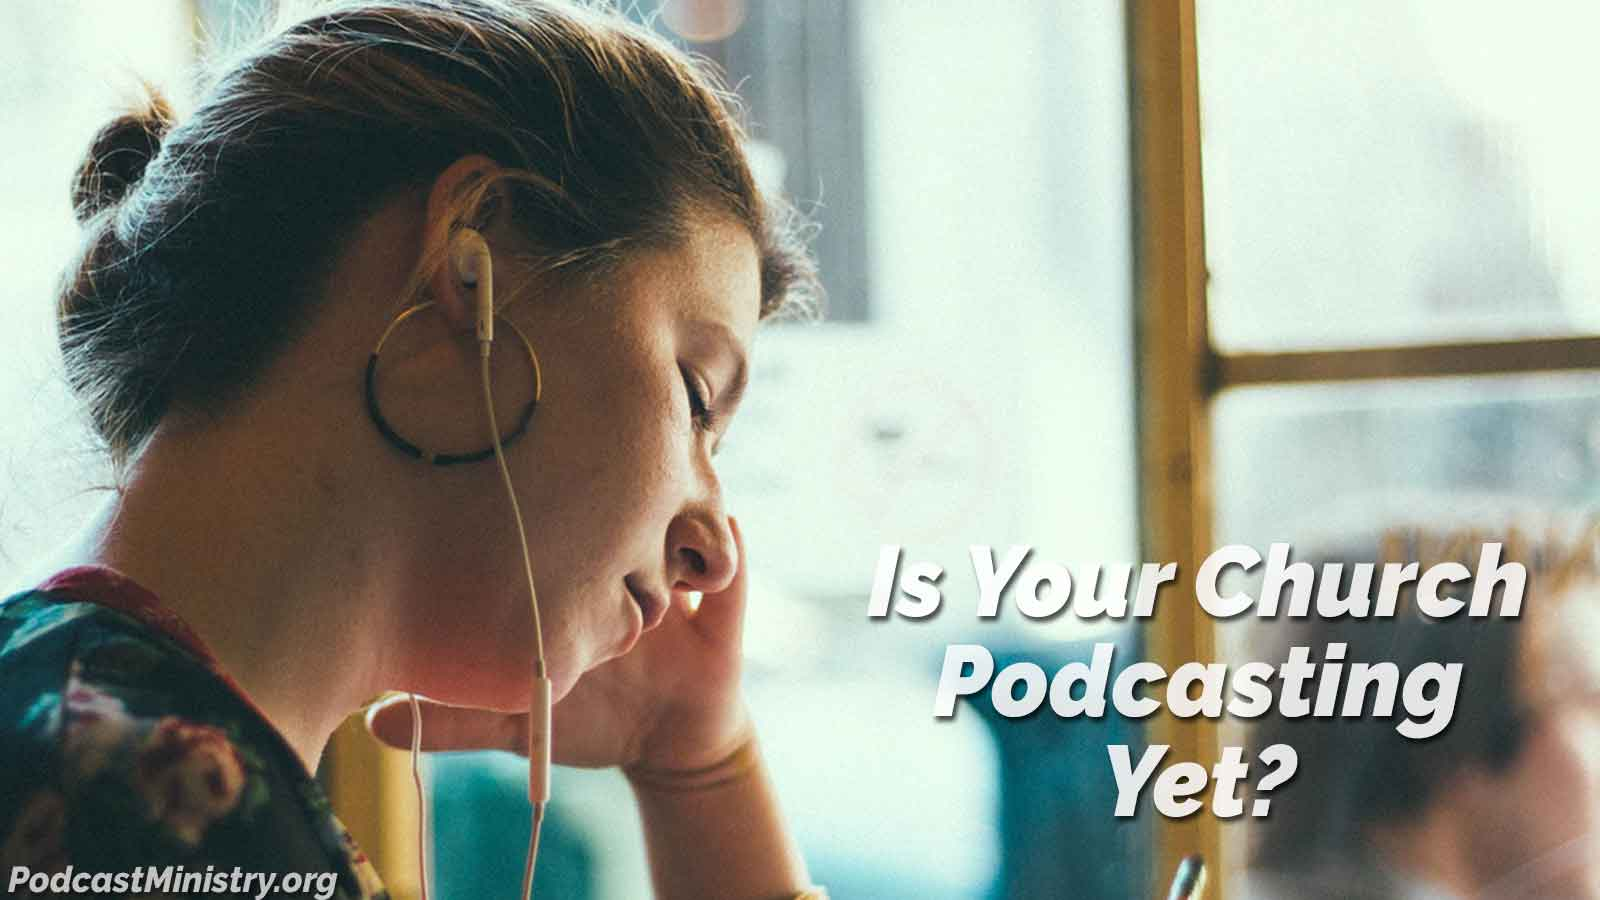 Is Your Church Podcasting Yet? Image of a woman listening with earbuds. PodcastMinistry.org from OnTheGo.FM